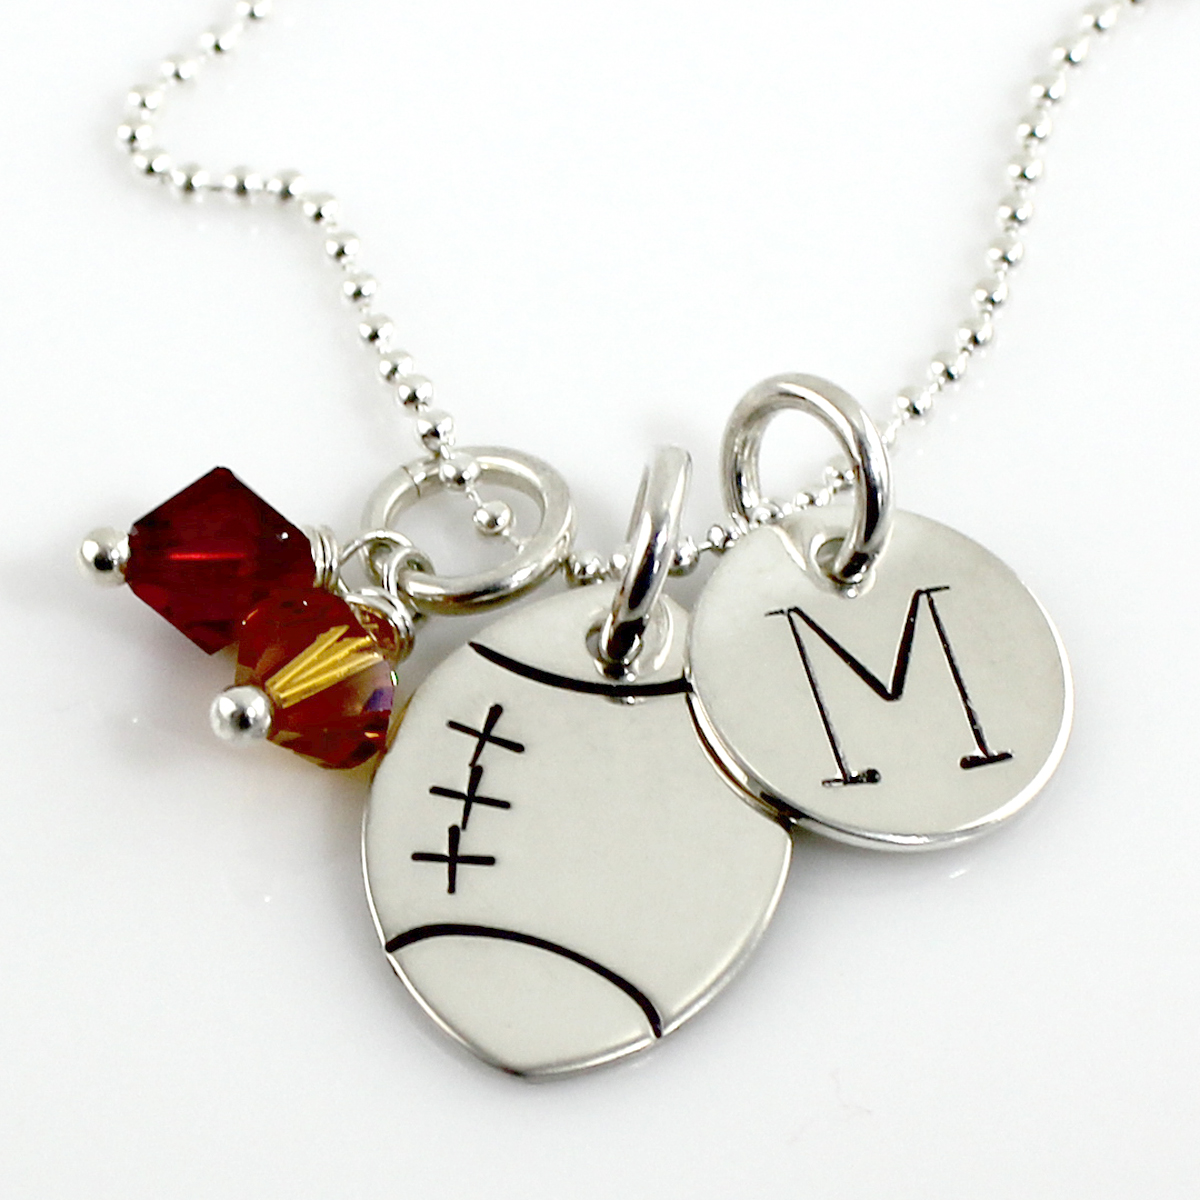 d football amp pendant silver diamond necklace boy s boys sterling chain image for